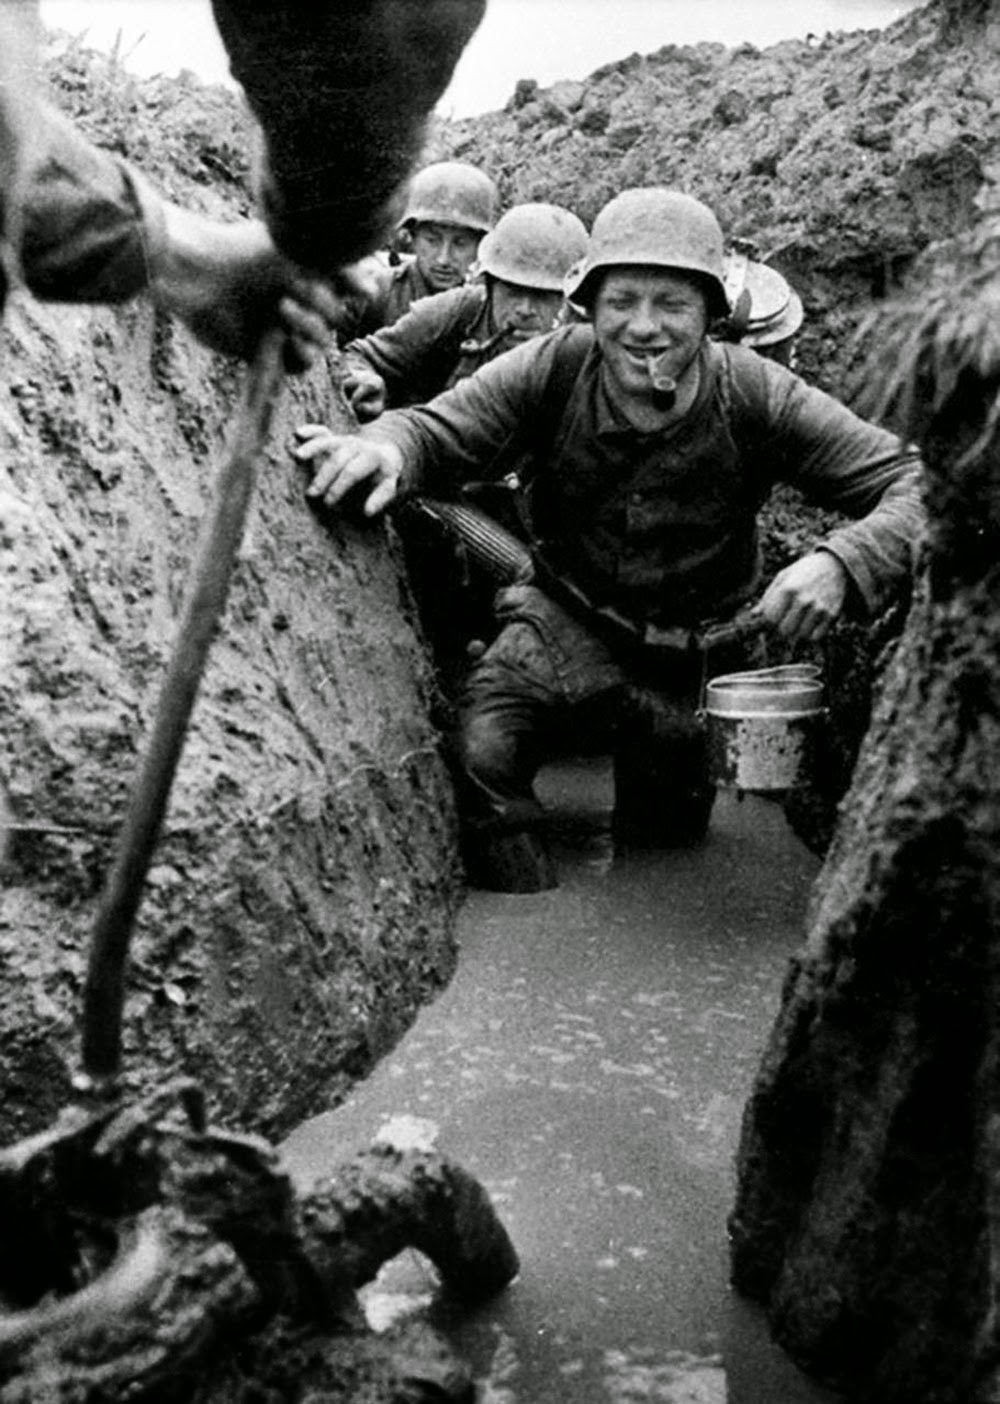 German soldiers in the flooded trenches, Soviet Union, 1943.